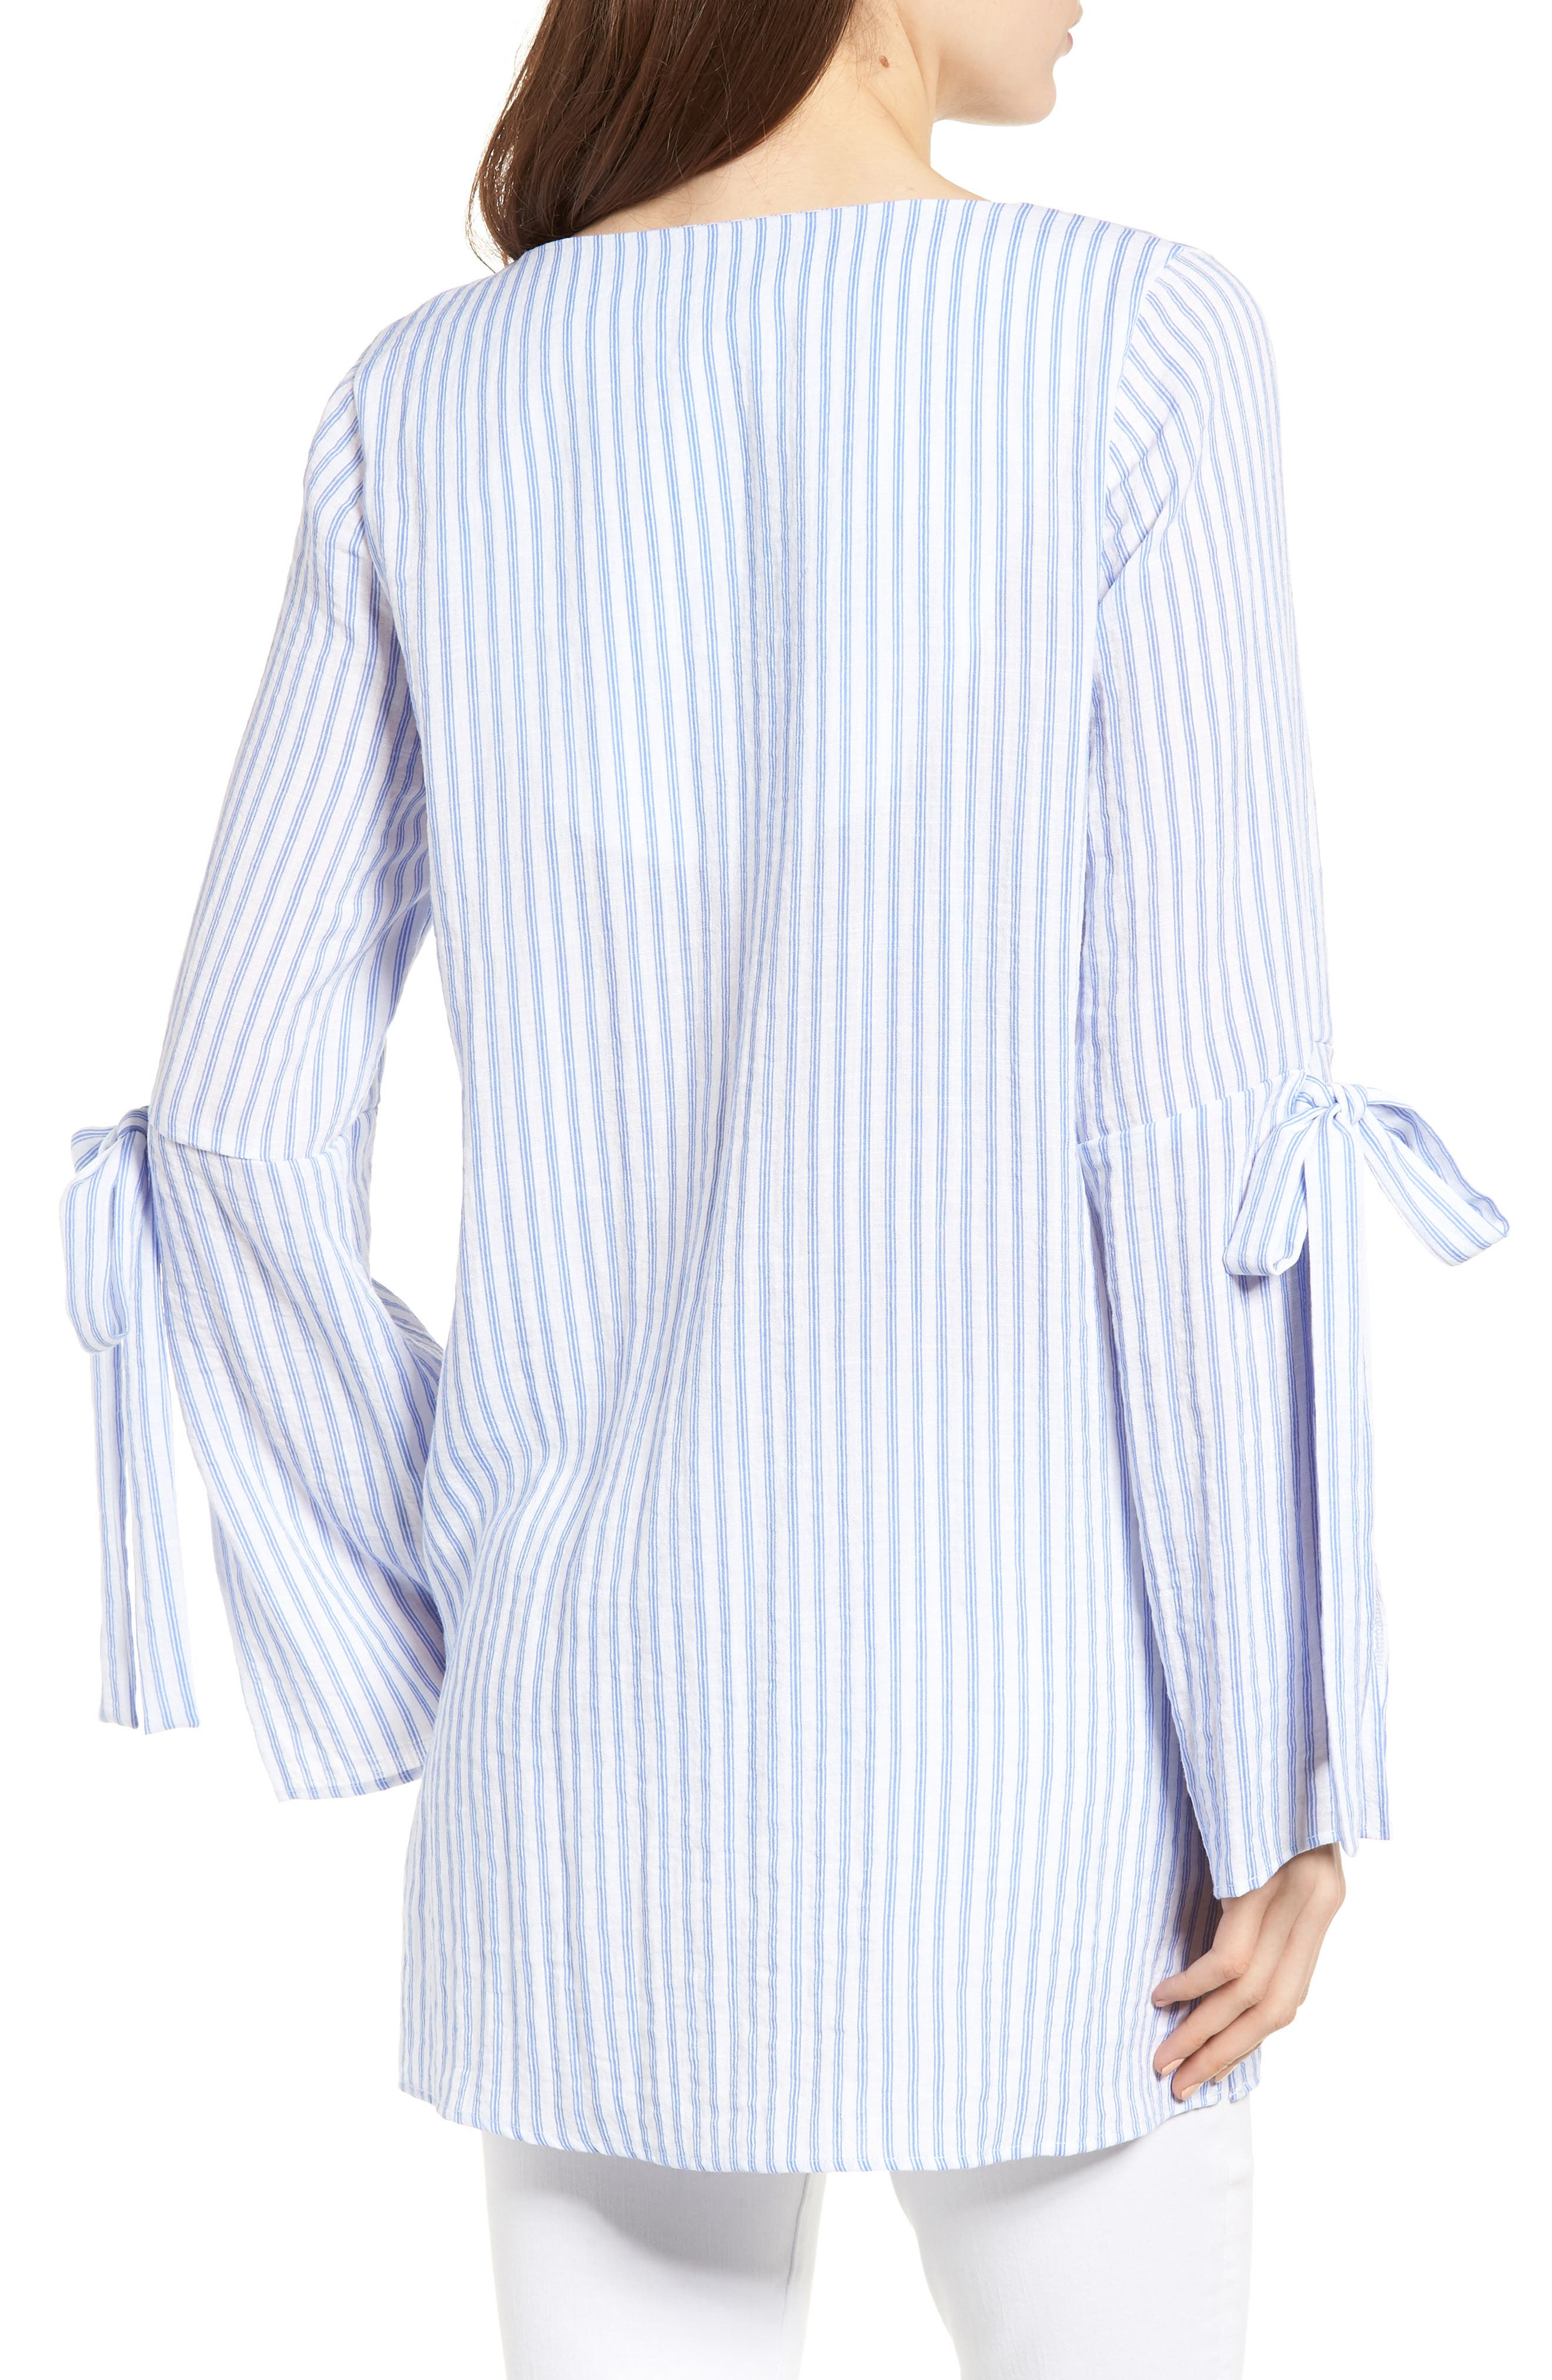 Bishop + Young Stripe Tunic Top,                             Alternate thumbnail 2, color,                             400